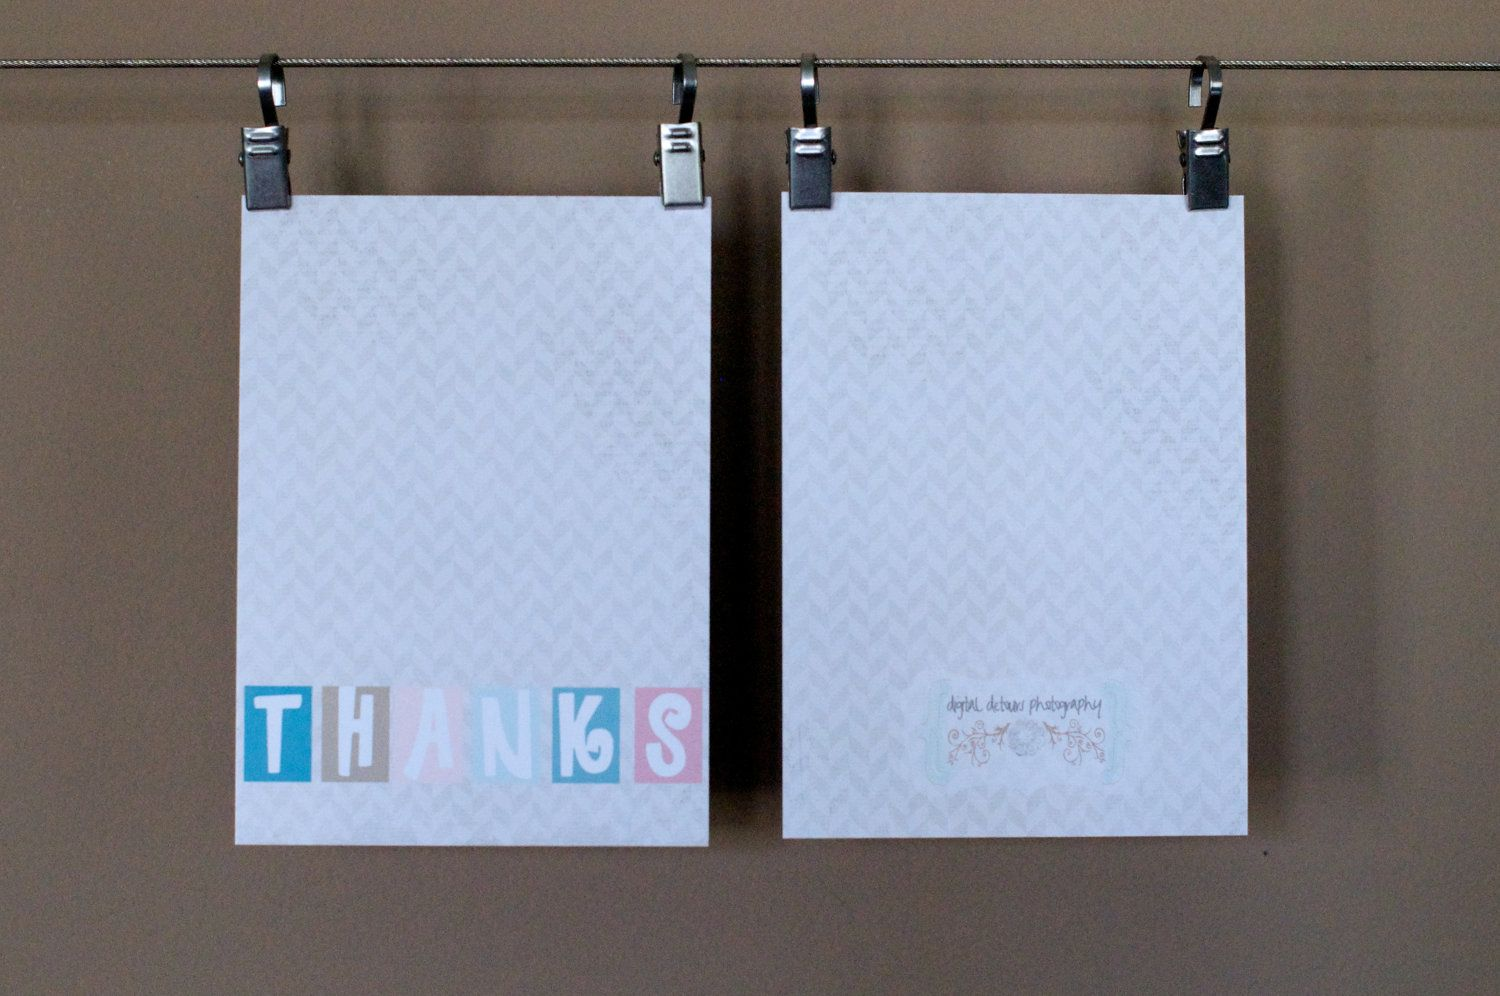 Flat  Custom Printed Thank You Cards - Personalized Greeting Cards - Choose your colors - (Set of 5). $7.00, via Etsy.